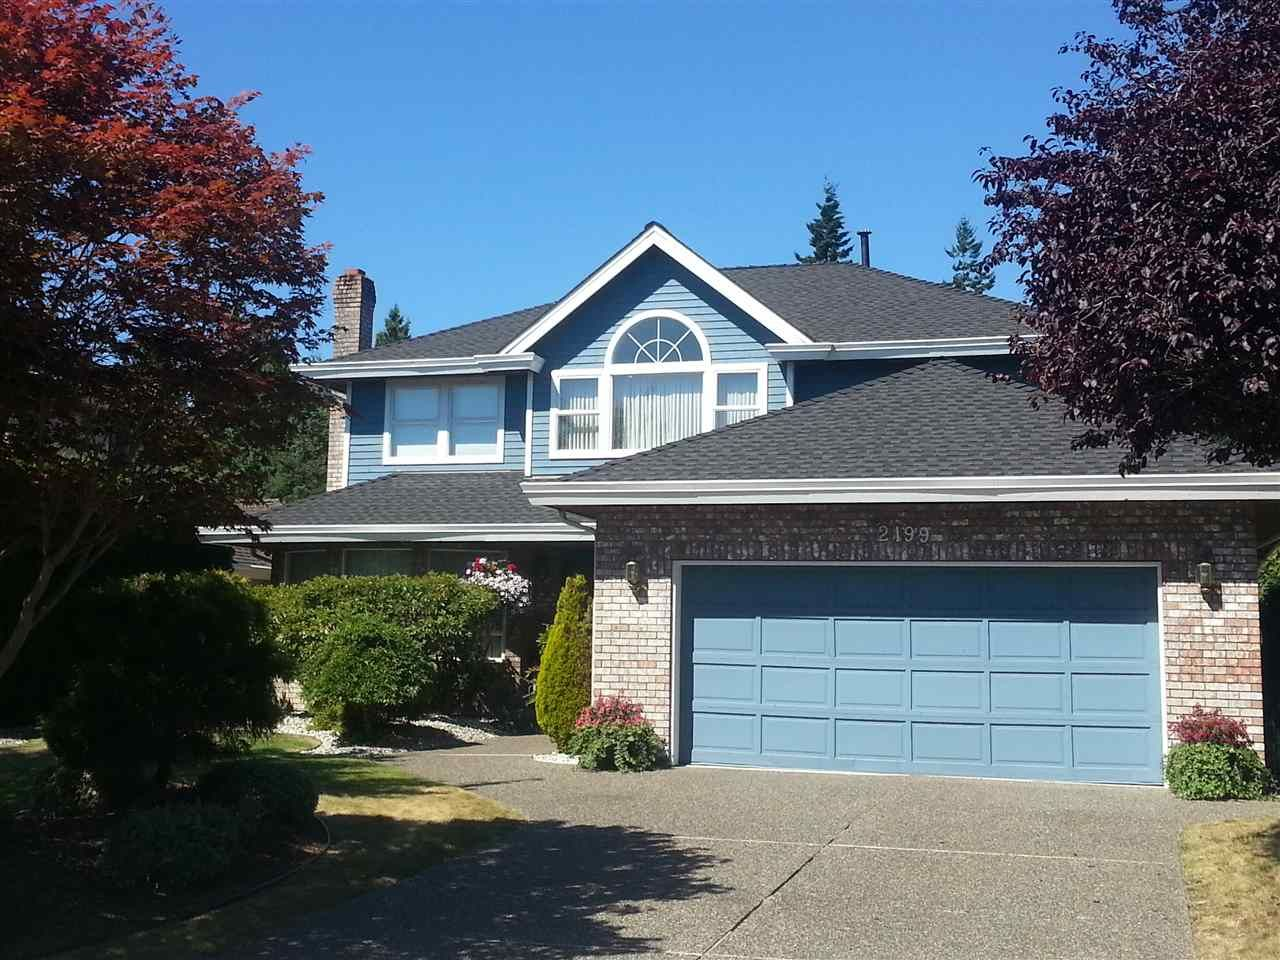 """Main Photo: 2199 148A Street in Surrey: Sunnyside Park Surrey House for sale in """"Meridian by the Sea"""" (South Surrey White Rock)  : MLS®# R2061670"""